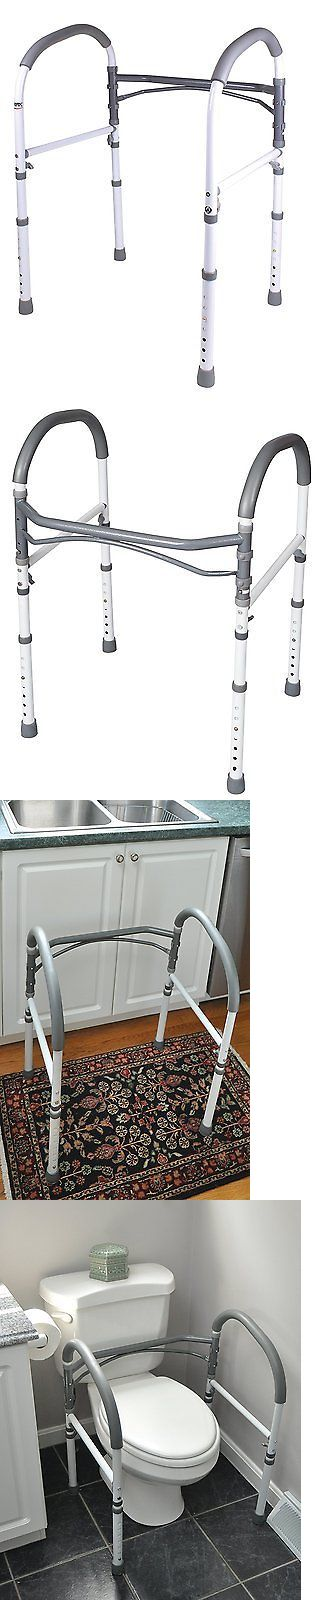 Handles and Rails: Carex Health Brands Bathroom Safety Rail BUY IT NOW ONLY: $73.54